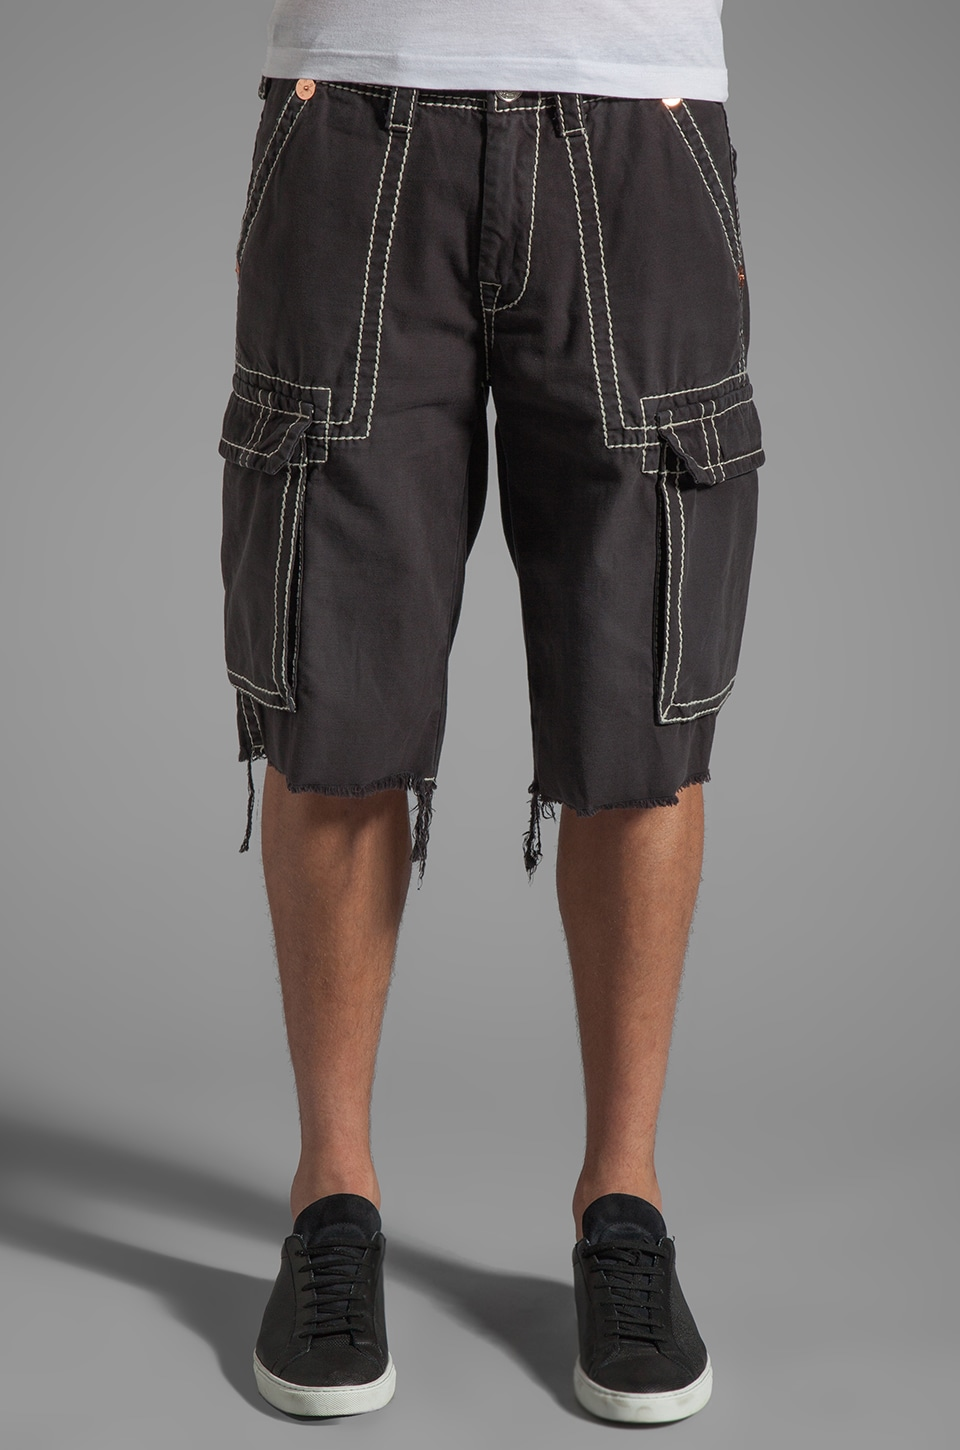 True Religion Isaac Cargo Short in Faded Black